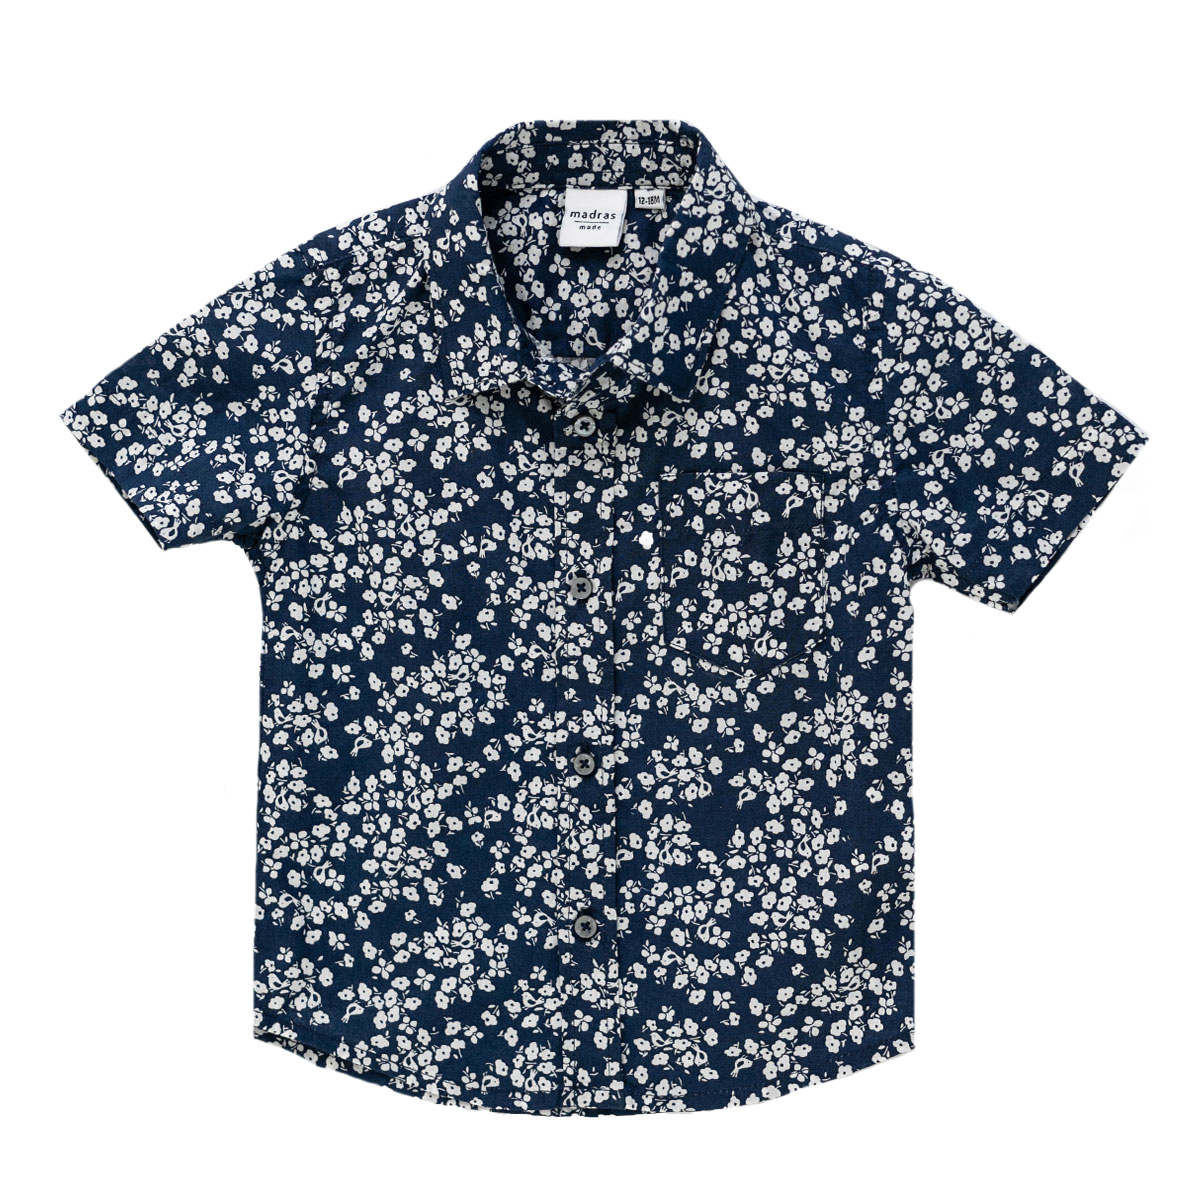 Madras Made Short Sleeve Montauk Shirt in Blue with White Flowers